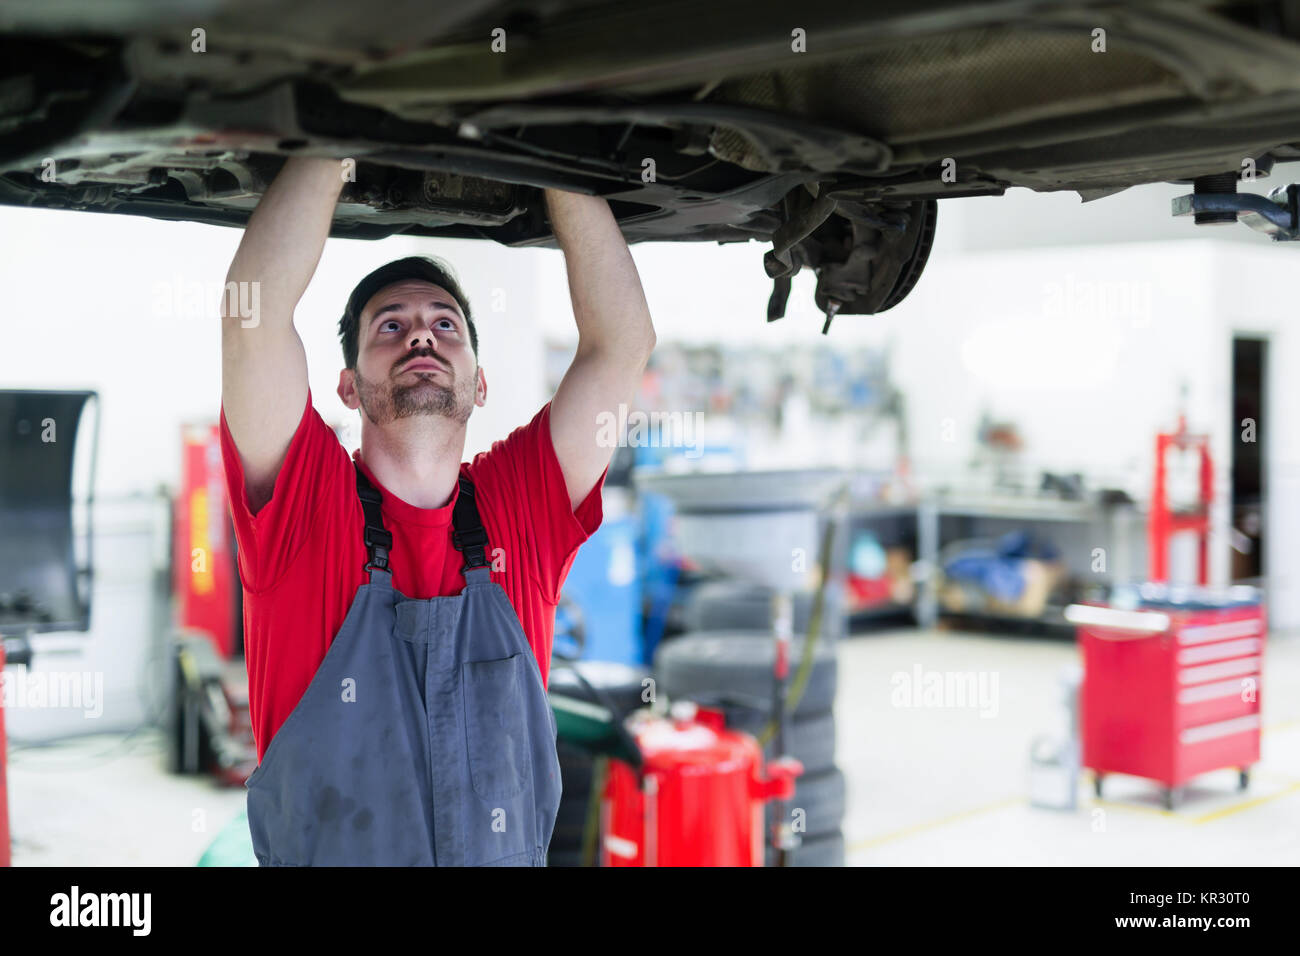 Car mechanic working at automotive service centera - Stock Image